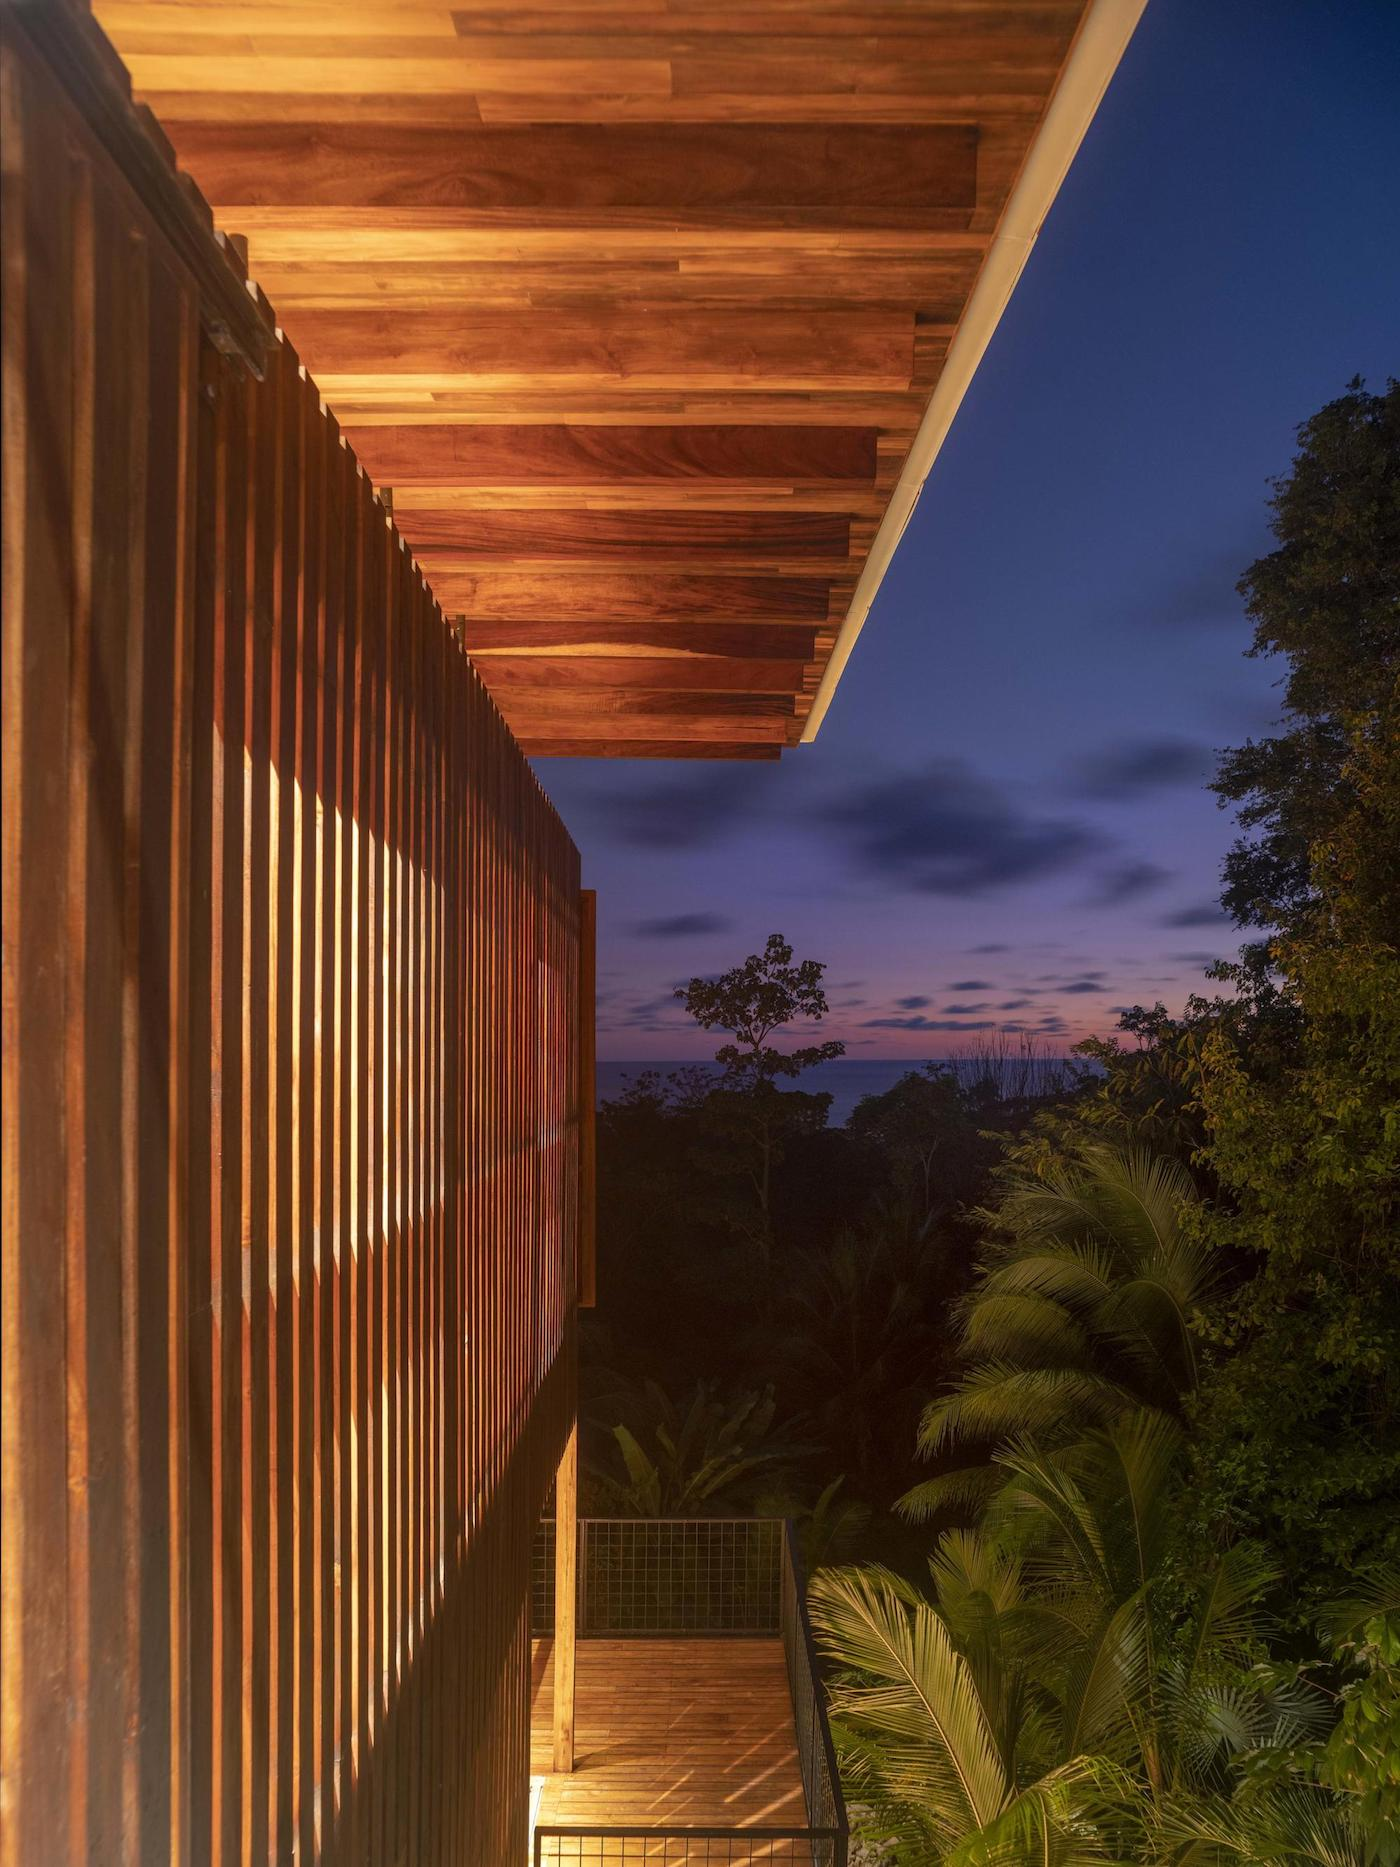 Night time exterior side view of timber battens